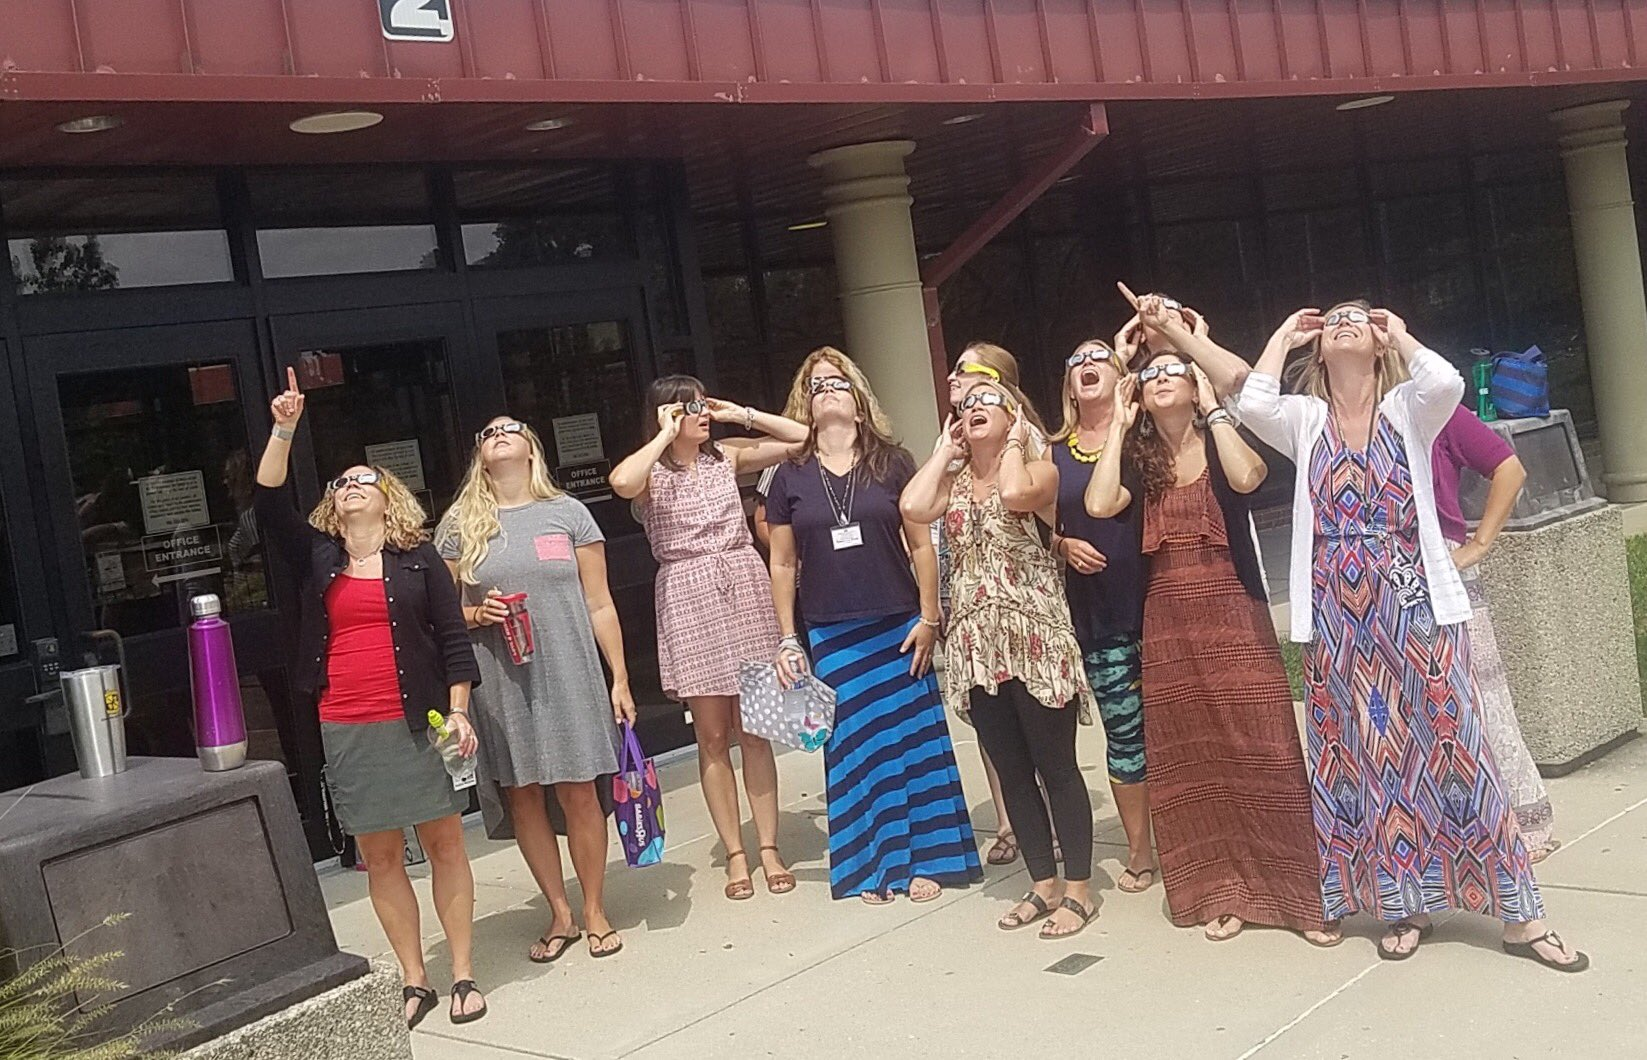 8th grade teachers check out the eclipse before taking students out to see it! Wow! @KarrerMS #SolarEclipse2017 #thedublindifference https://t.co/gYjabHVvC5